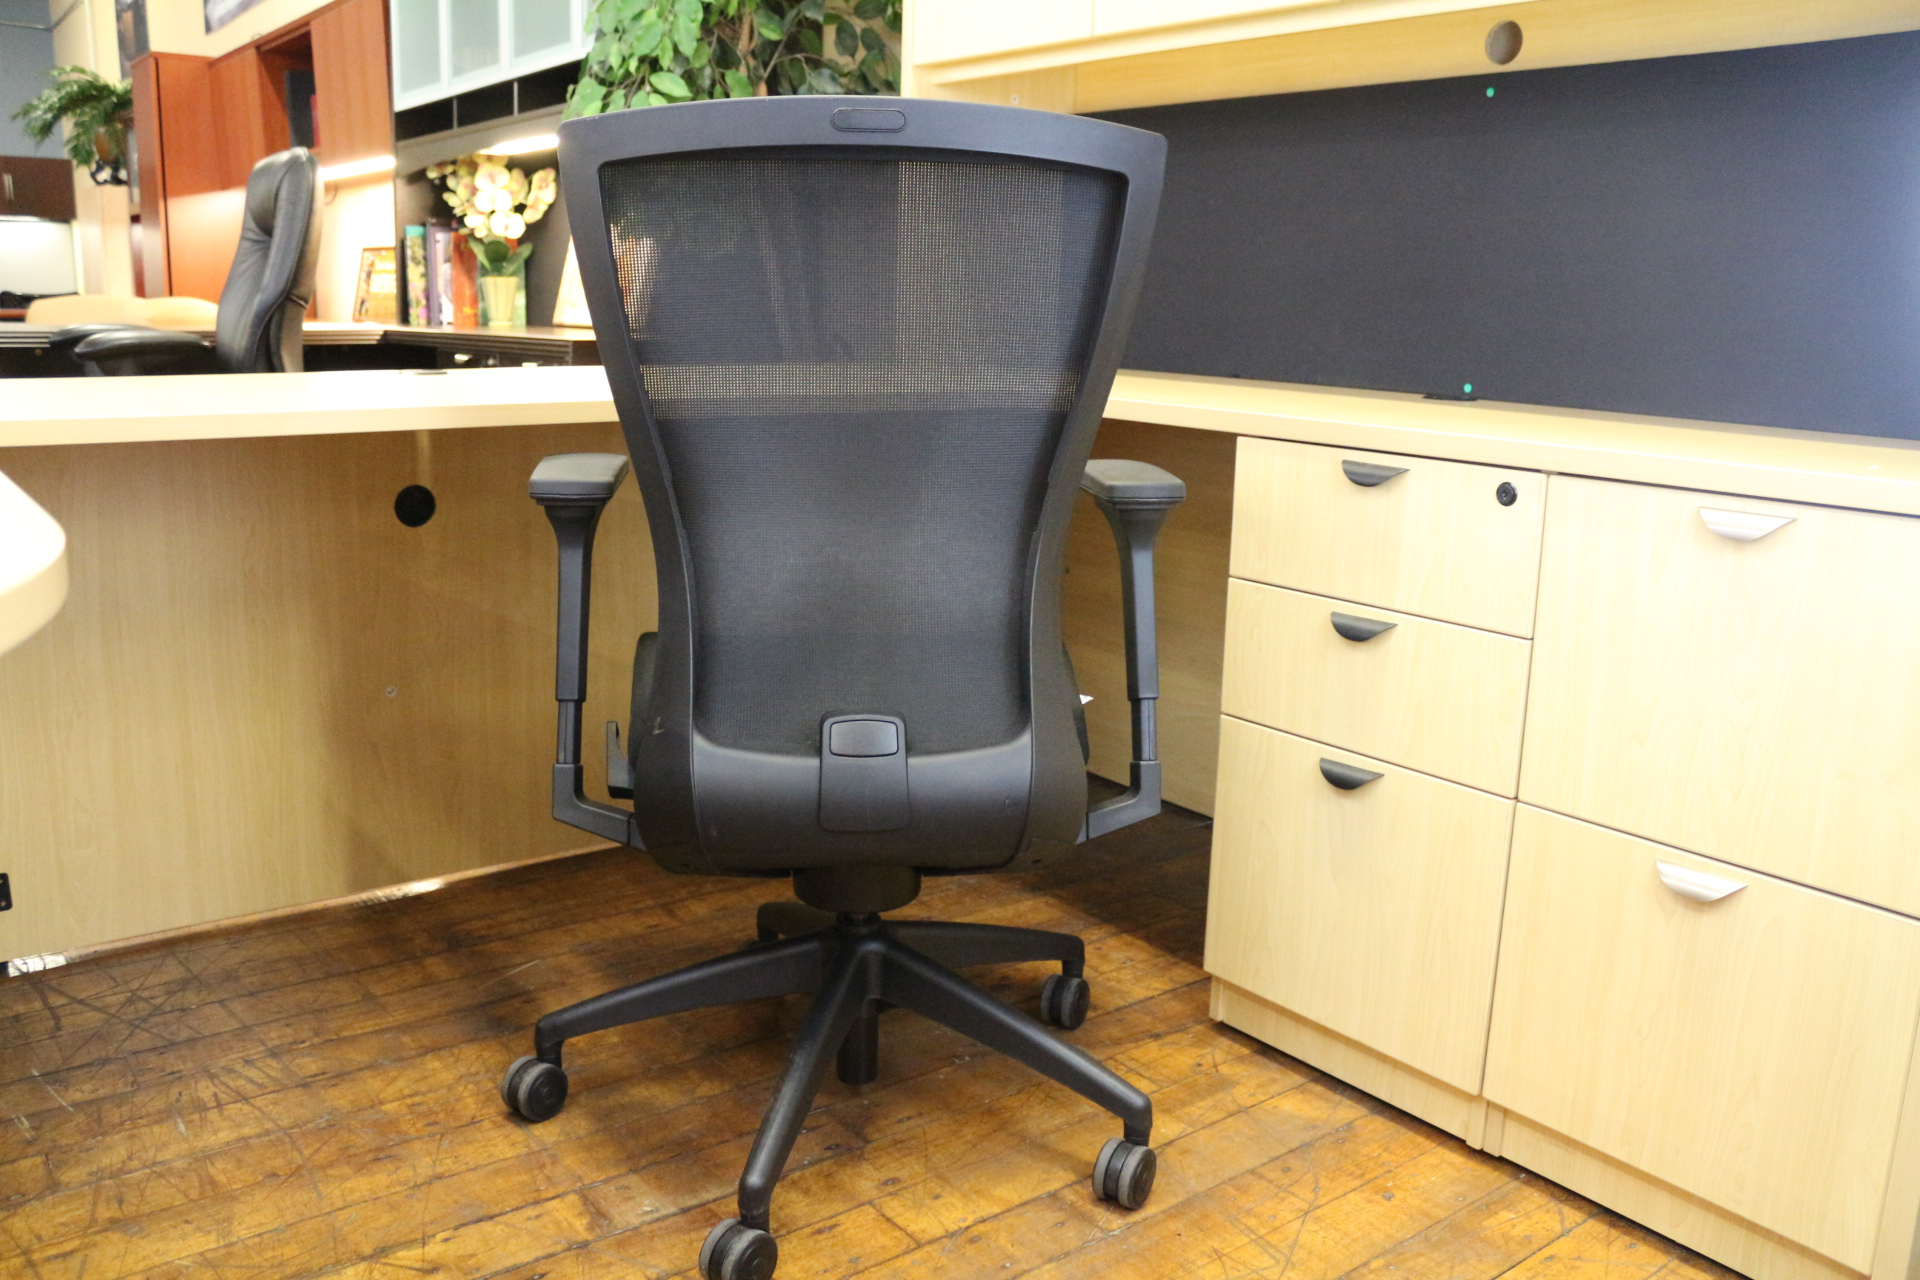 peartreeofficefurniture_peartreeofficefurniture_img_0937.jpg